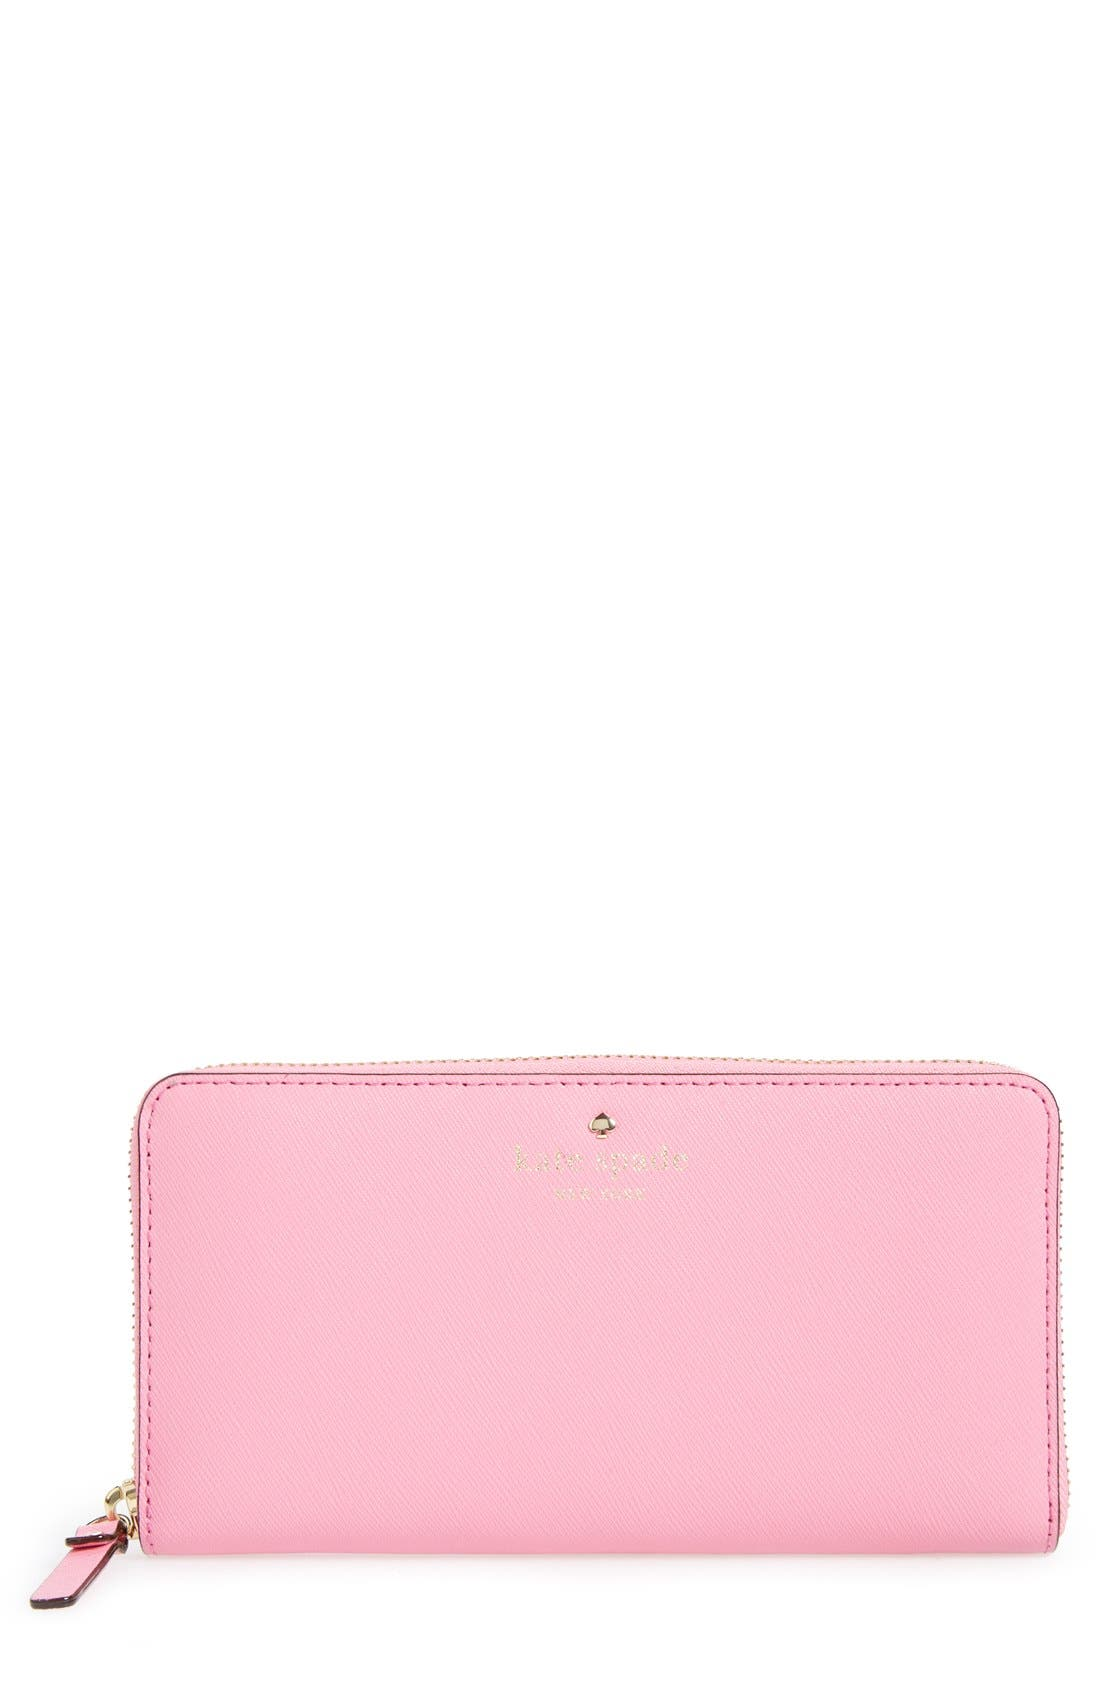 Main Image - kate spade new york 'cedar street - lacey' wallet